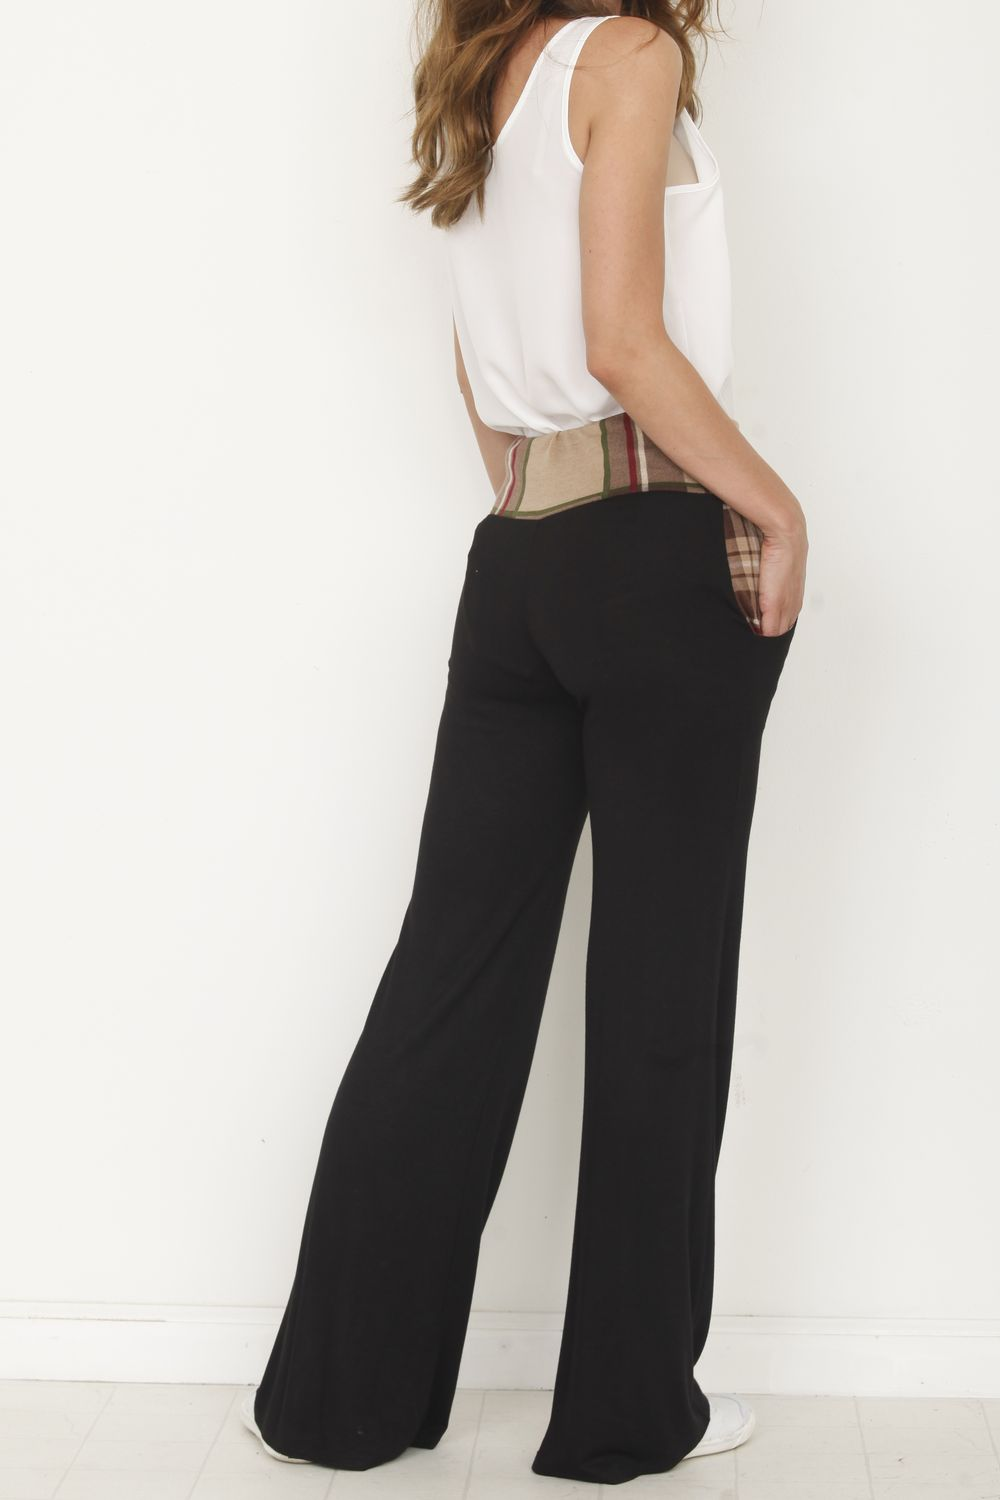 Mocha Plaid Band Black Drawstring Lounge Pants